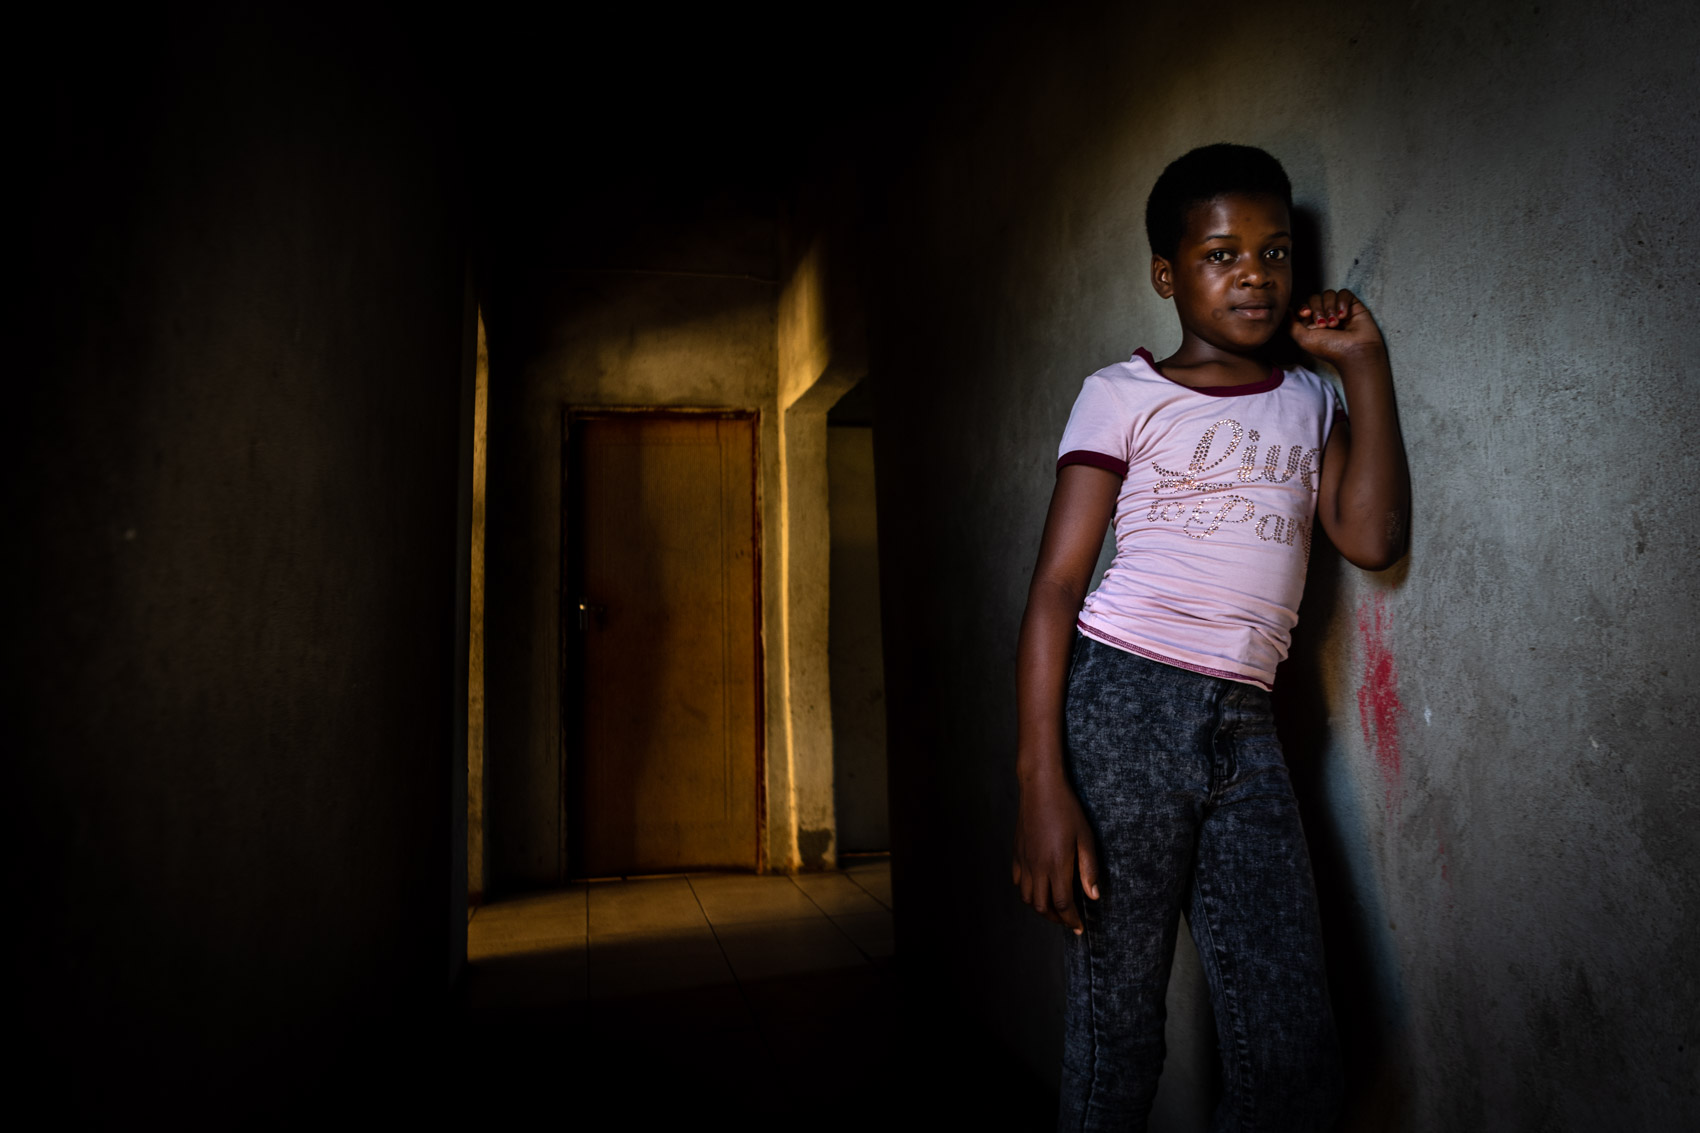 An African girl leaning on a wall inside a house in South Africa